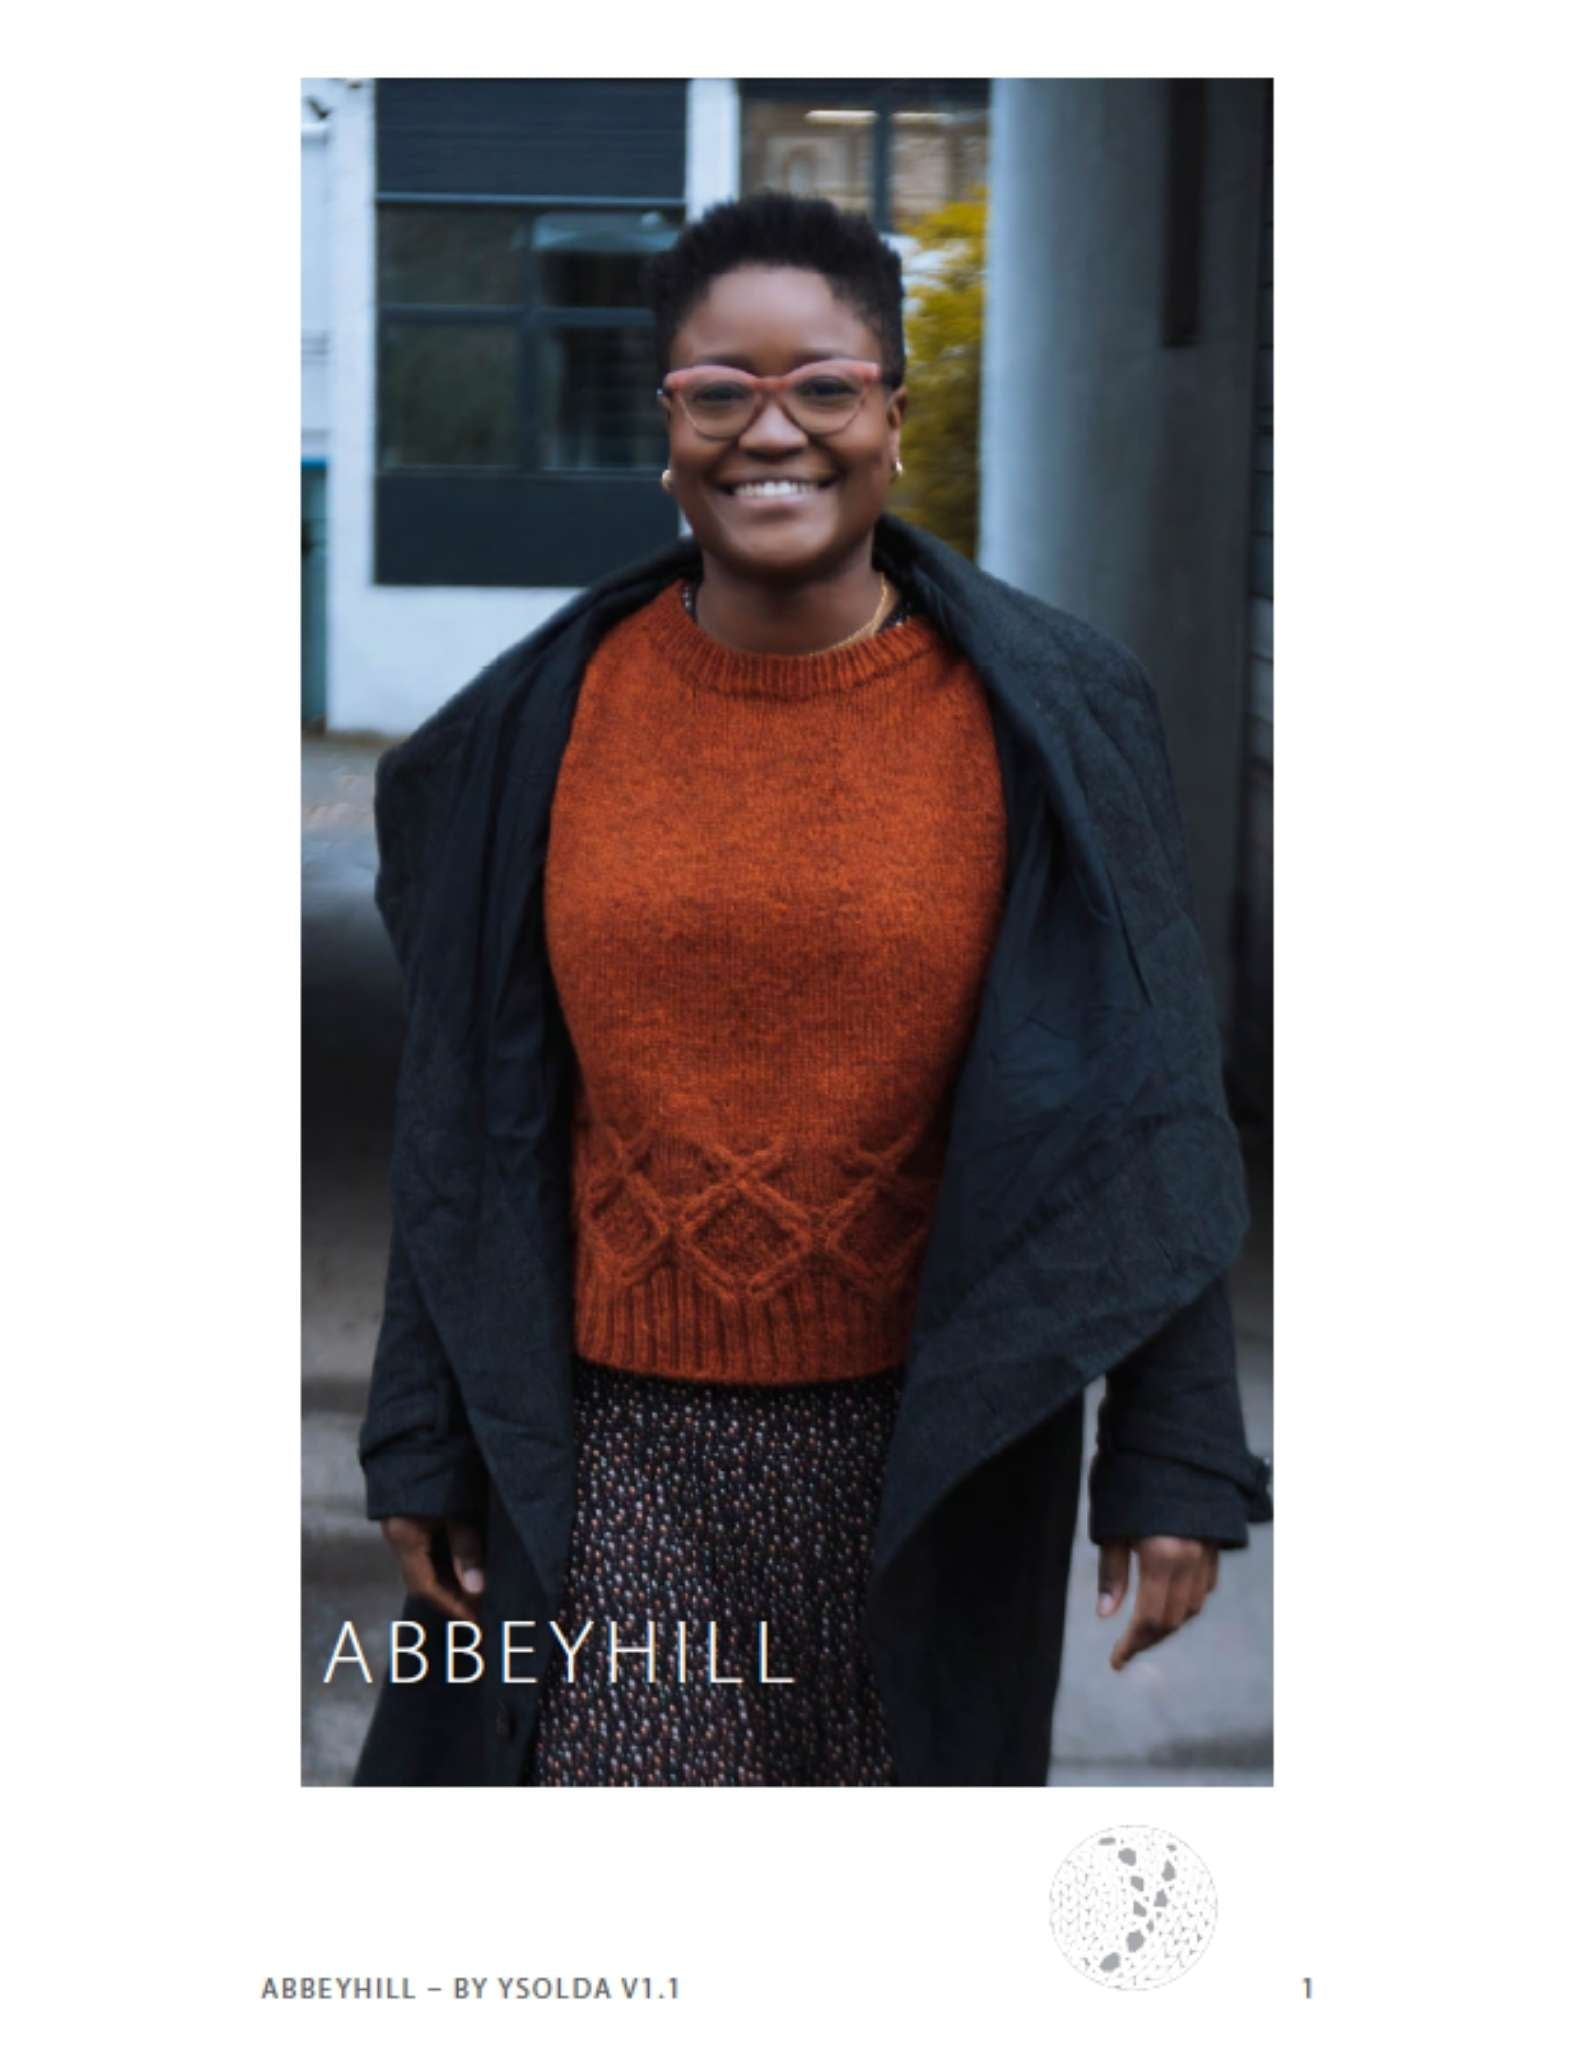 image of a black woman wearing an orange sweater and open, dark jacket. She is walking towards the camera and smiling.